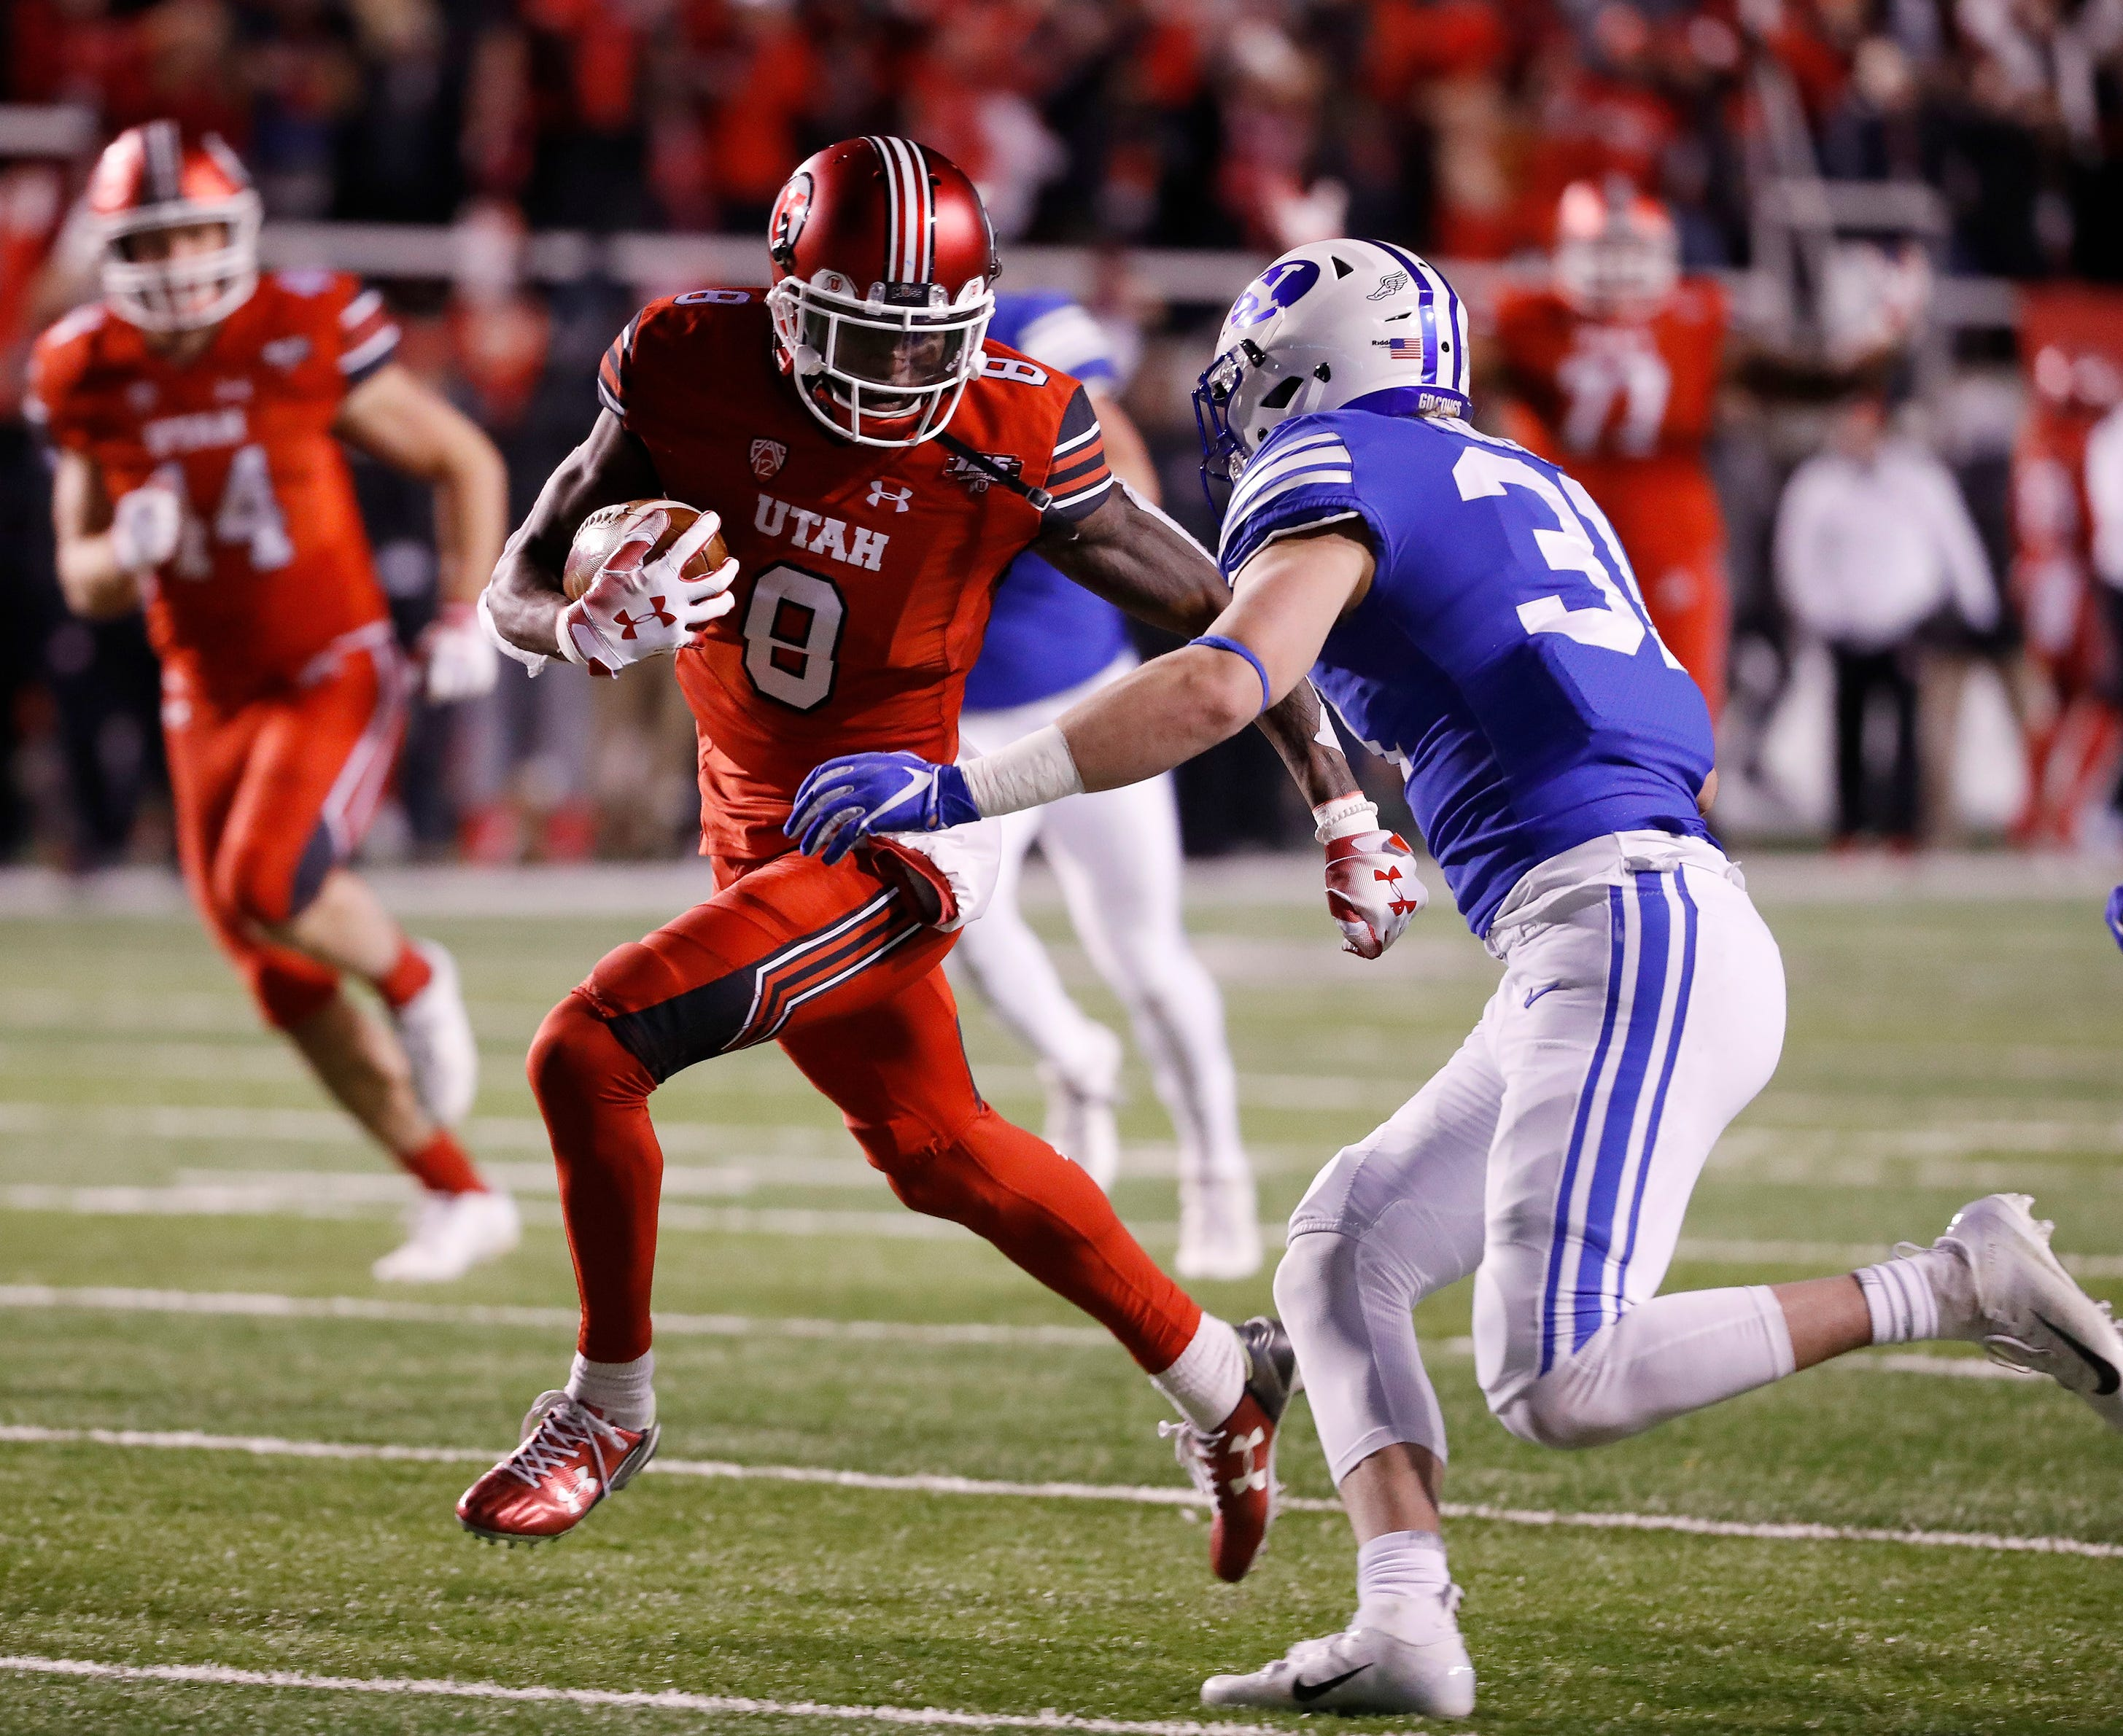 Utah wide receiver Siaosi Mariner  runs for a first down after a reception against Brigham Young during their game in 2018.